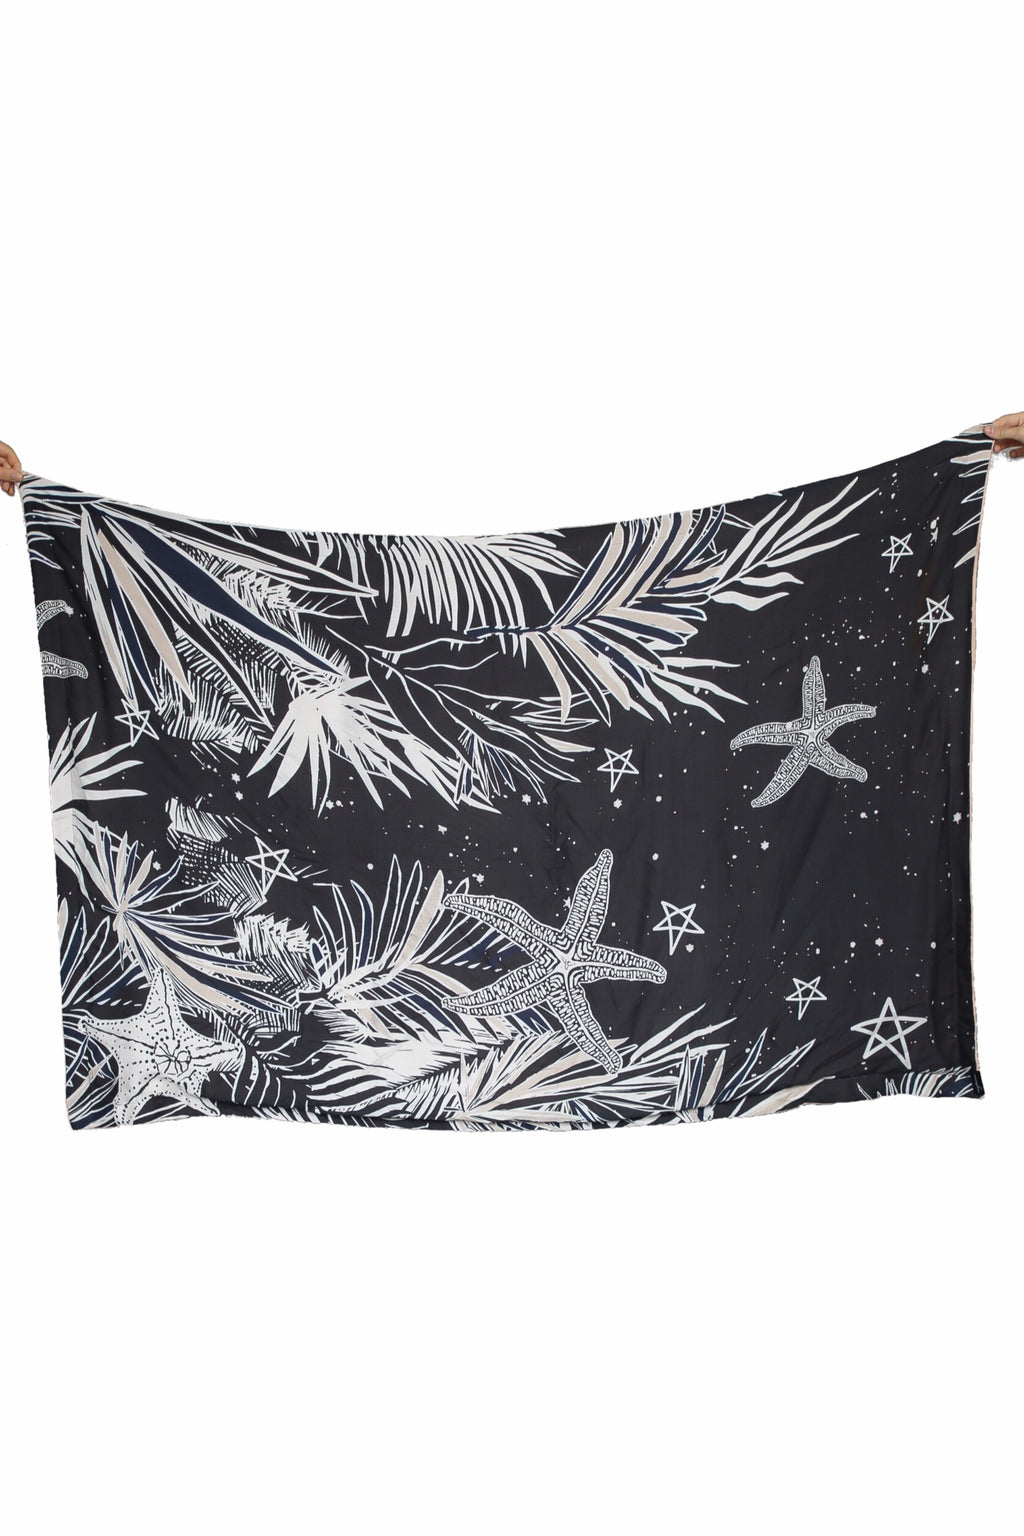 Nightswim Stardust Towel